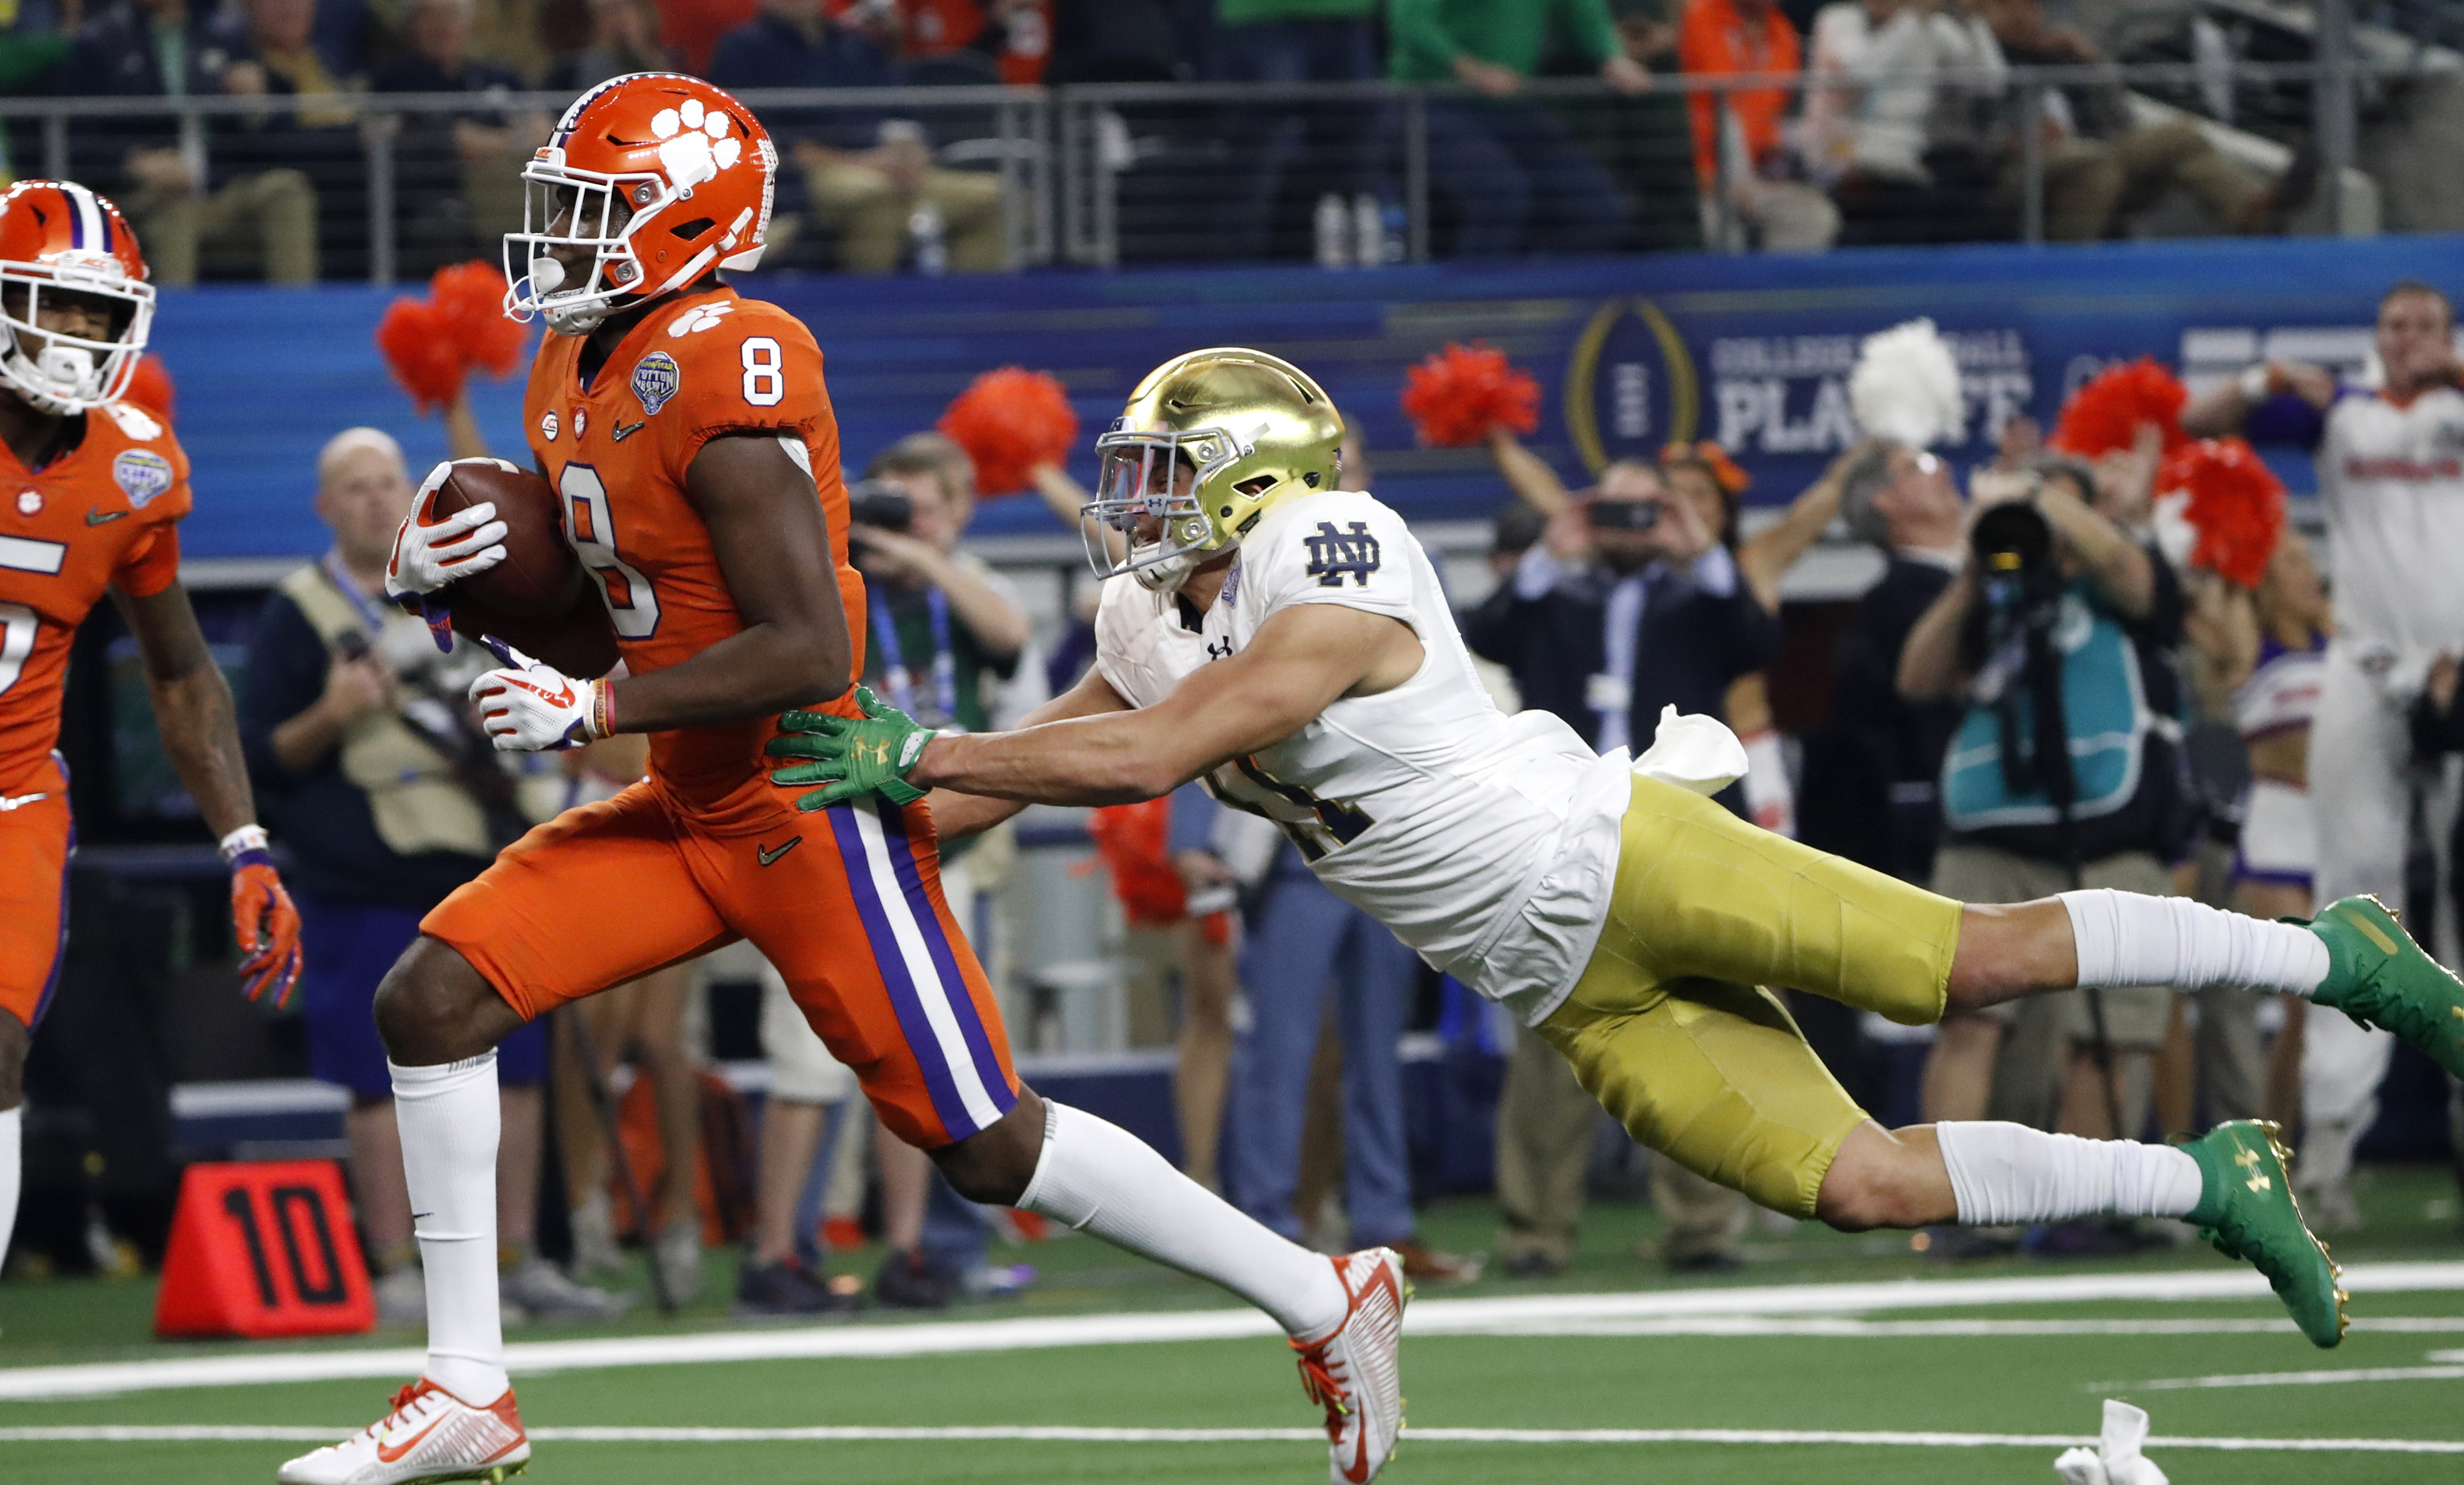 Clemson wide receiver Justyn Ross (8) escapes a tackle attempt by Notre Dame safety Alohi Gilman, right, as Ross reaches the end zone for a touchdown in the first half of the NCAA Cotton Bowl semi-final playoff football game, Saturday, Dec. 29, 2018, in Arlington, Texas. (AP Photo/Roger Steinman)